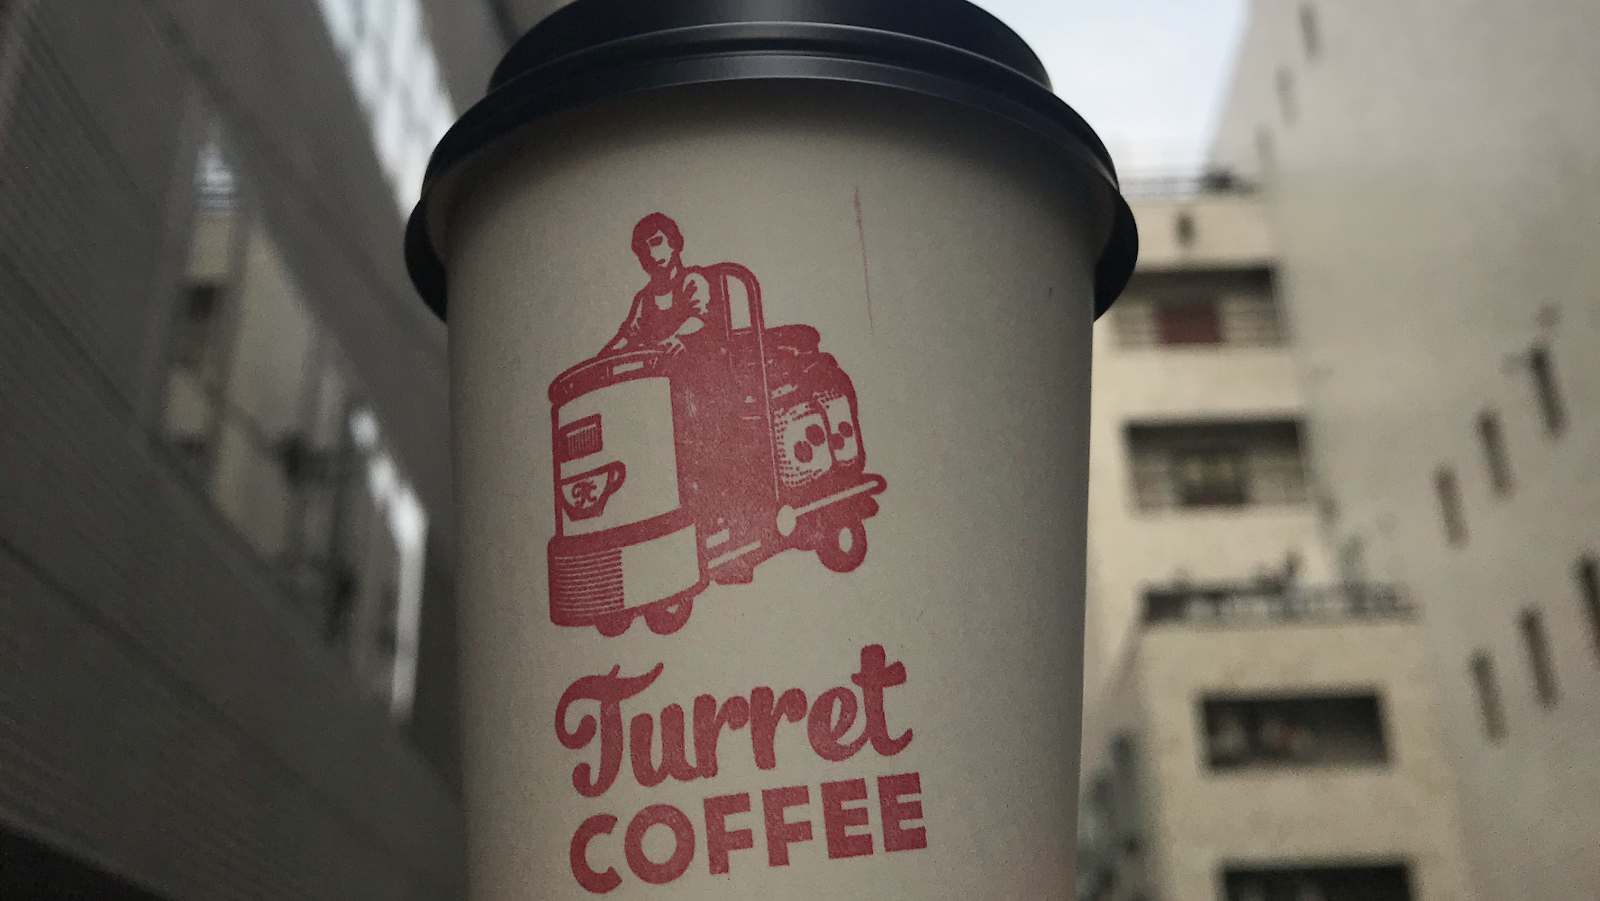 Turret COFFEE Tukijiの写真